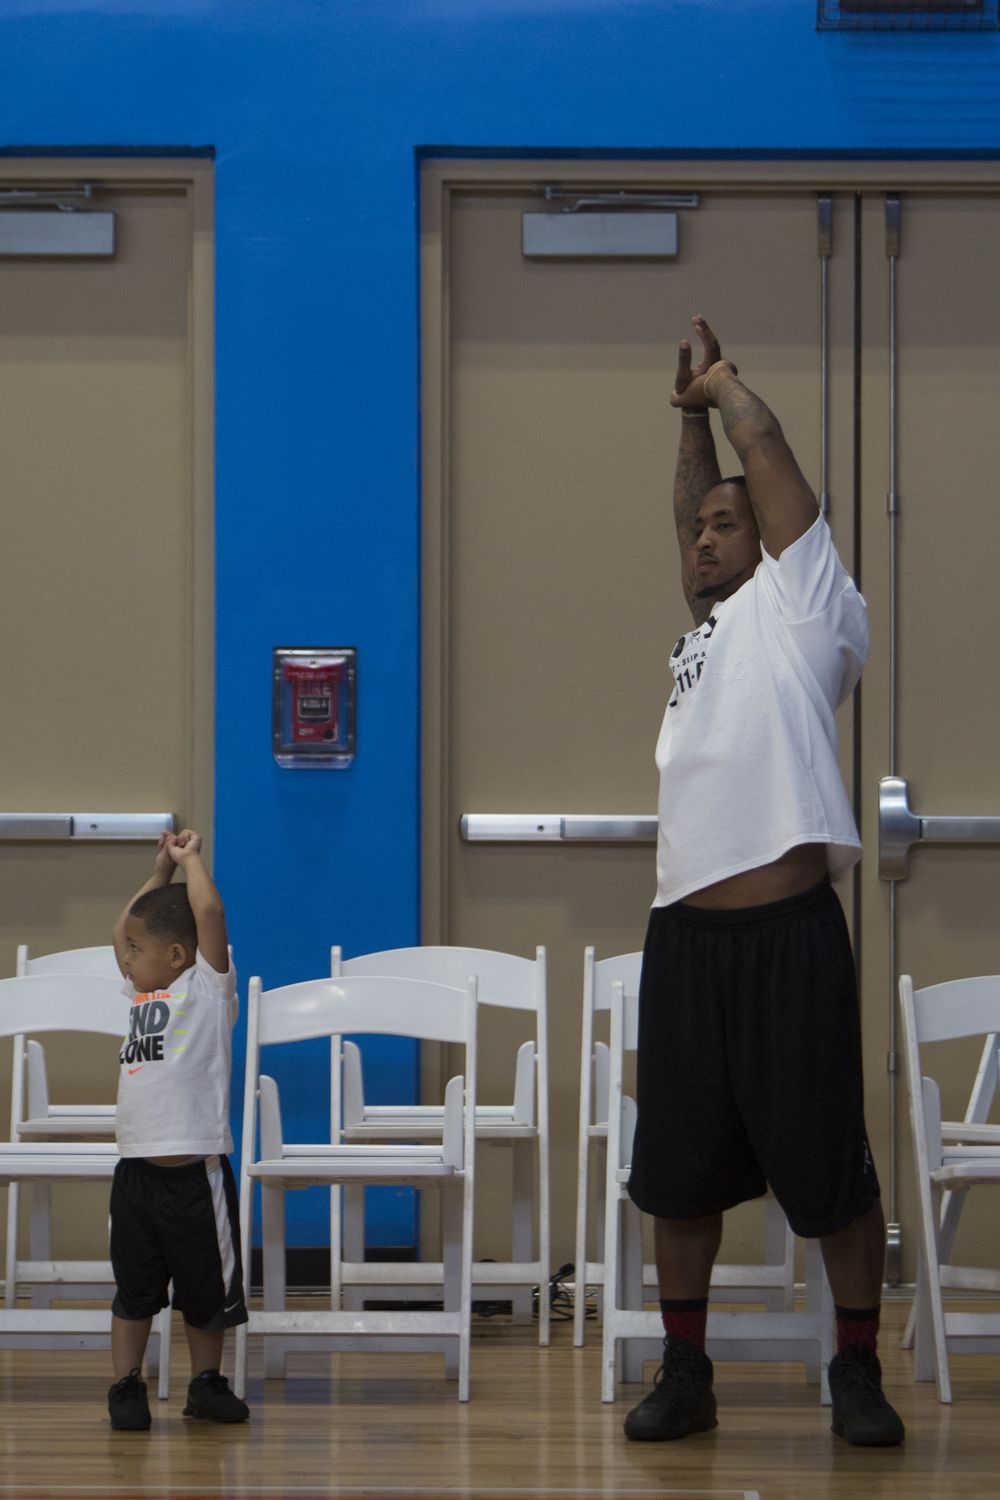 A son copies his dad as he stretches before the 2nd Annual All-Star Basketball Game at the Greater Naples Y.M.C.A. on July 23, 2016 in Naples, Florida.